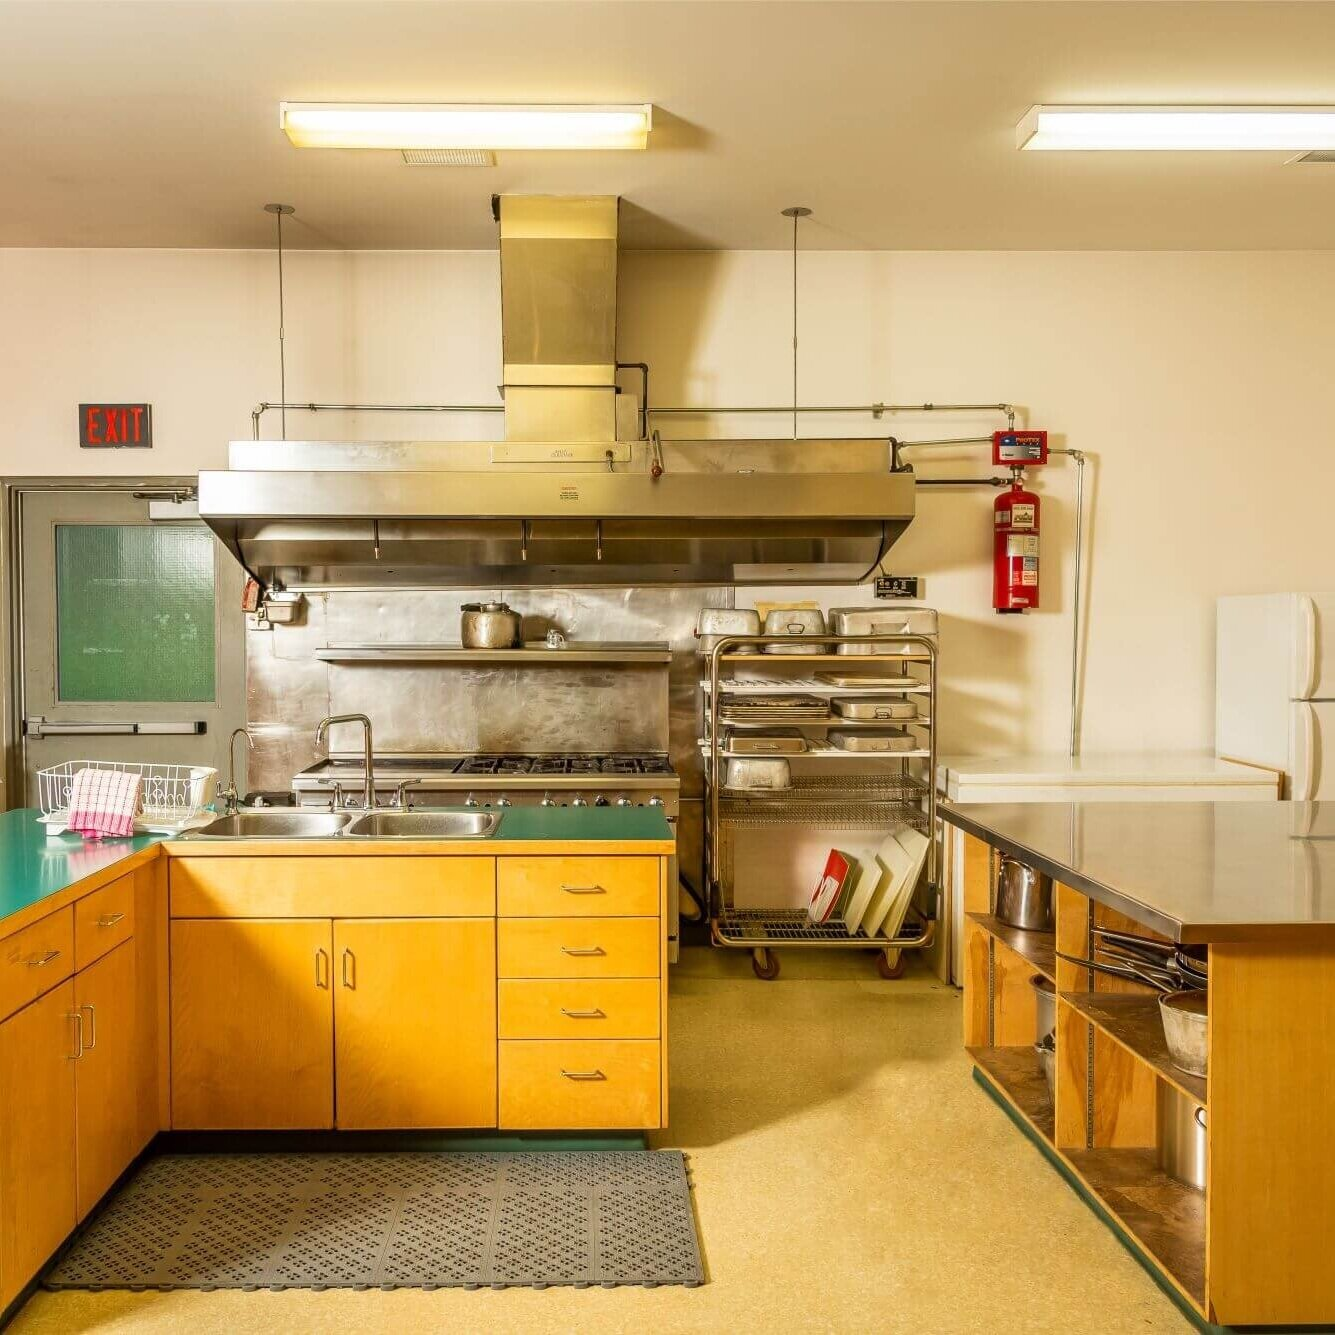 Island Lake has a fully equipped commercial kitchen!